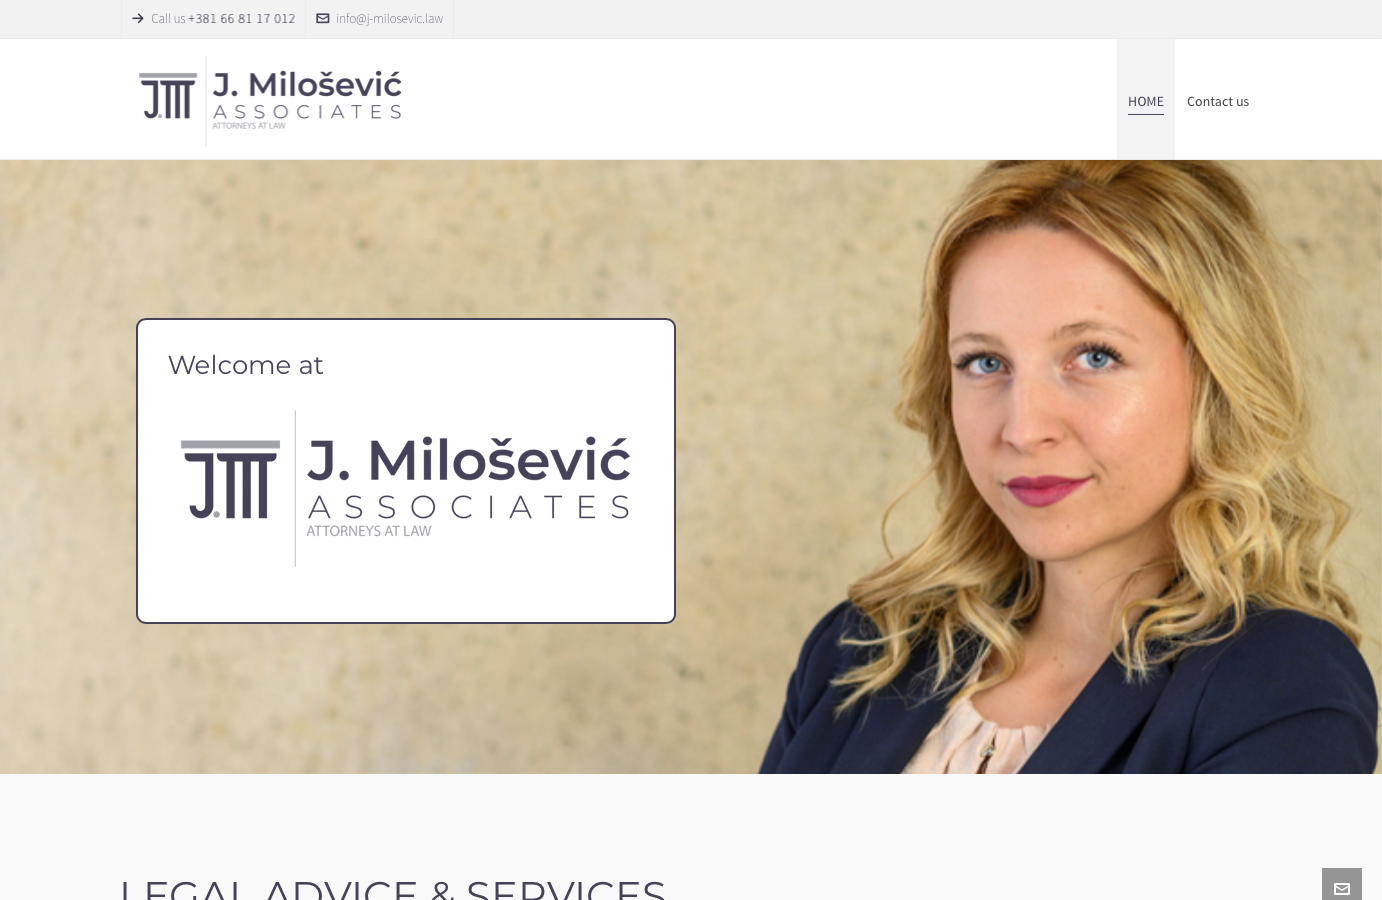 J. Milosevic Associates Serbia